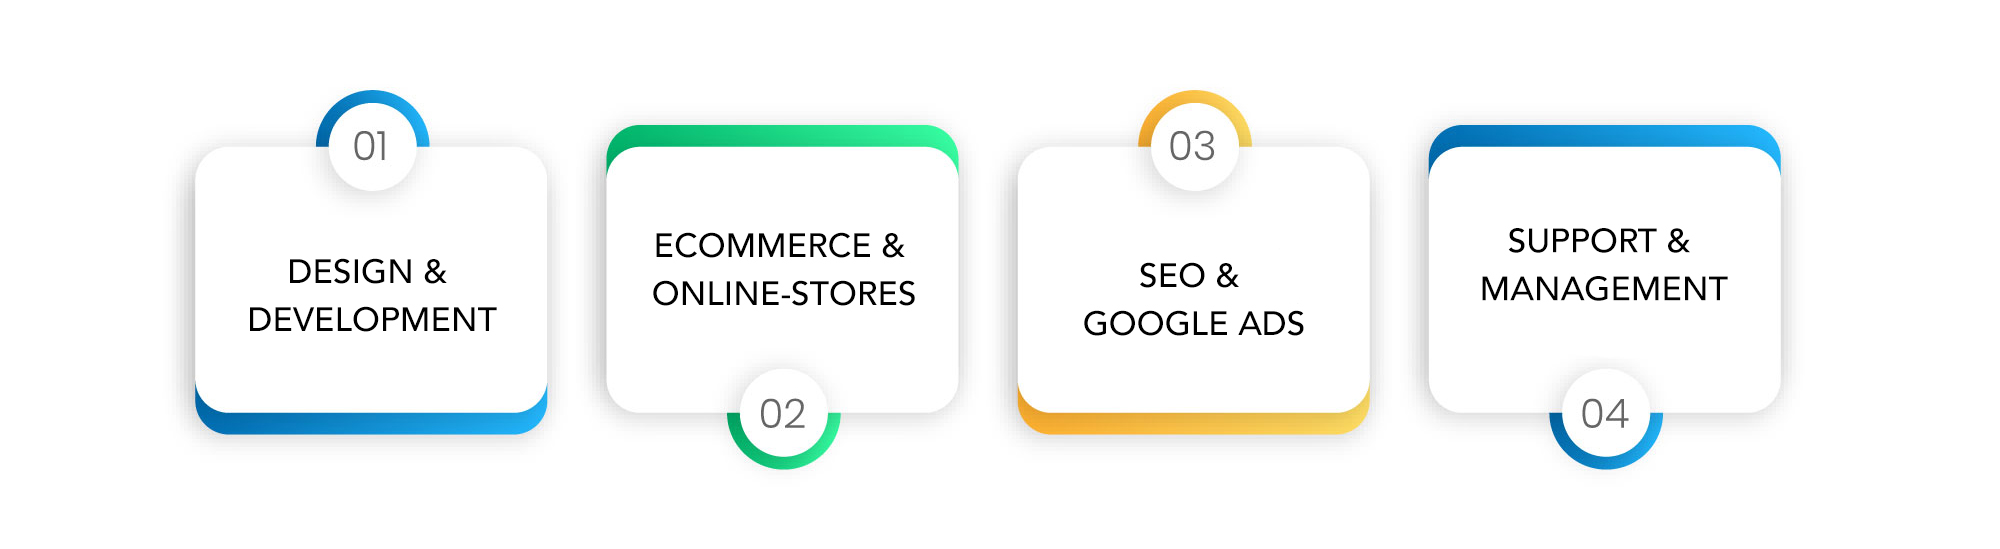 Affordable premium DESIGN & DEVELOPMENT ECOMMERCE & ONLINE-STORES SEO & GOOGLE ADS SUPPORT & MANAGEMENT - Whiteball Creative Solutions